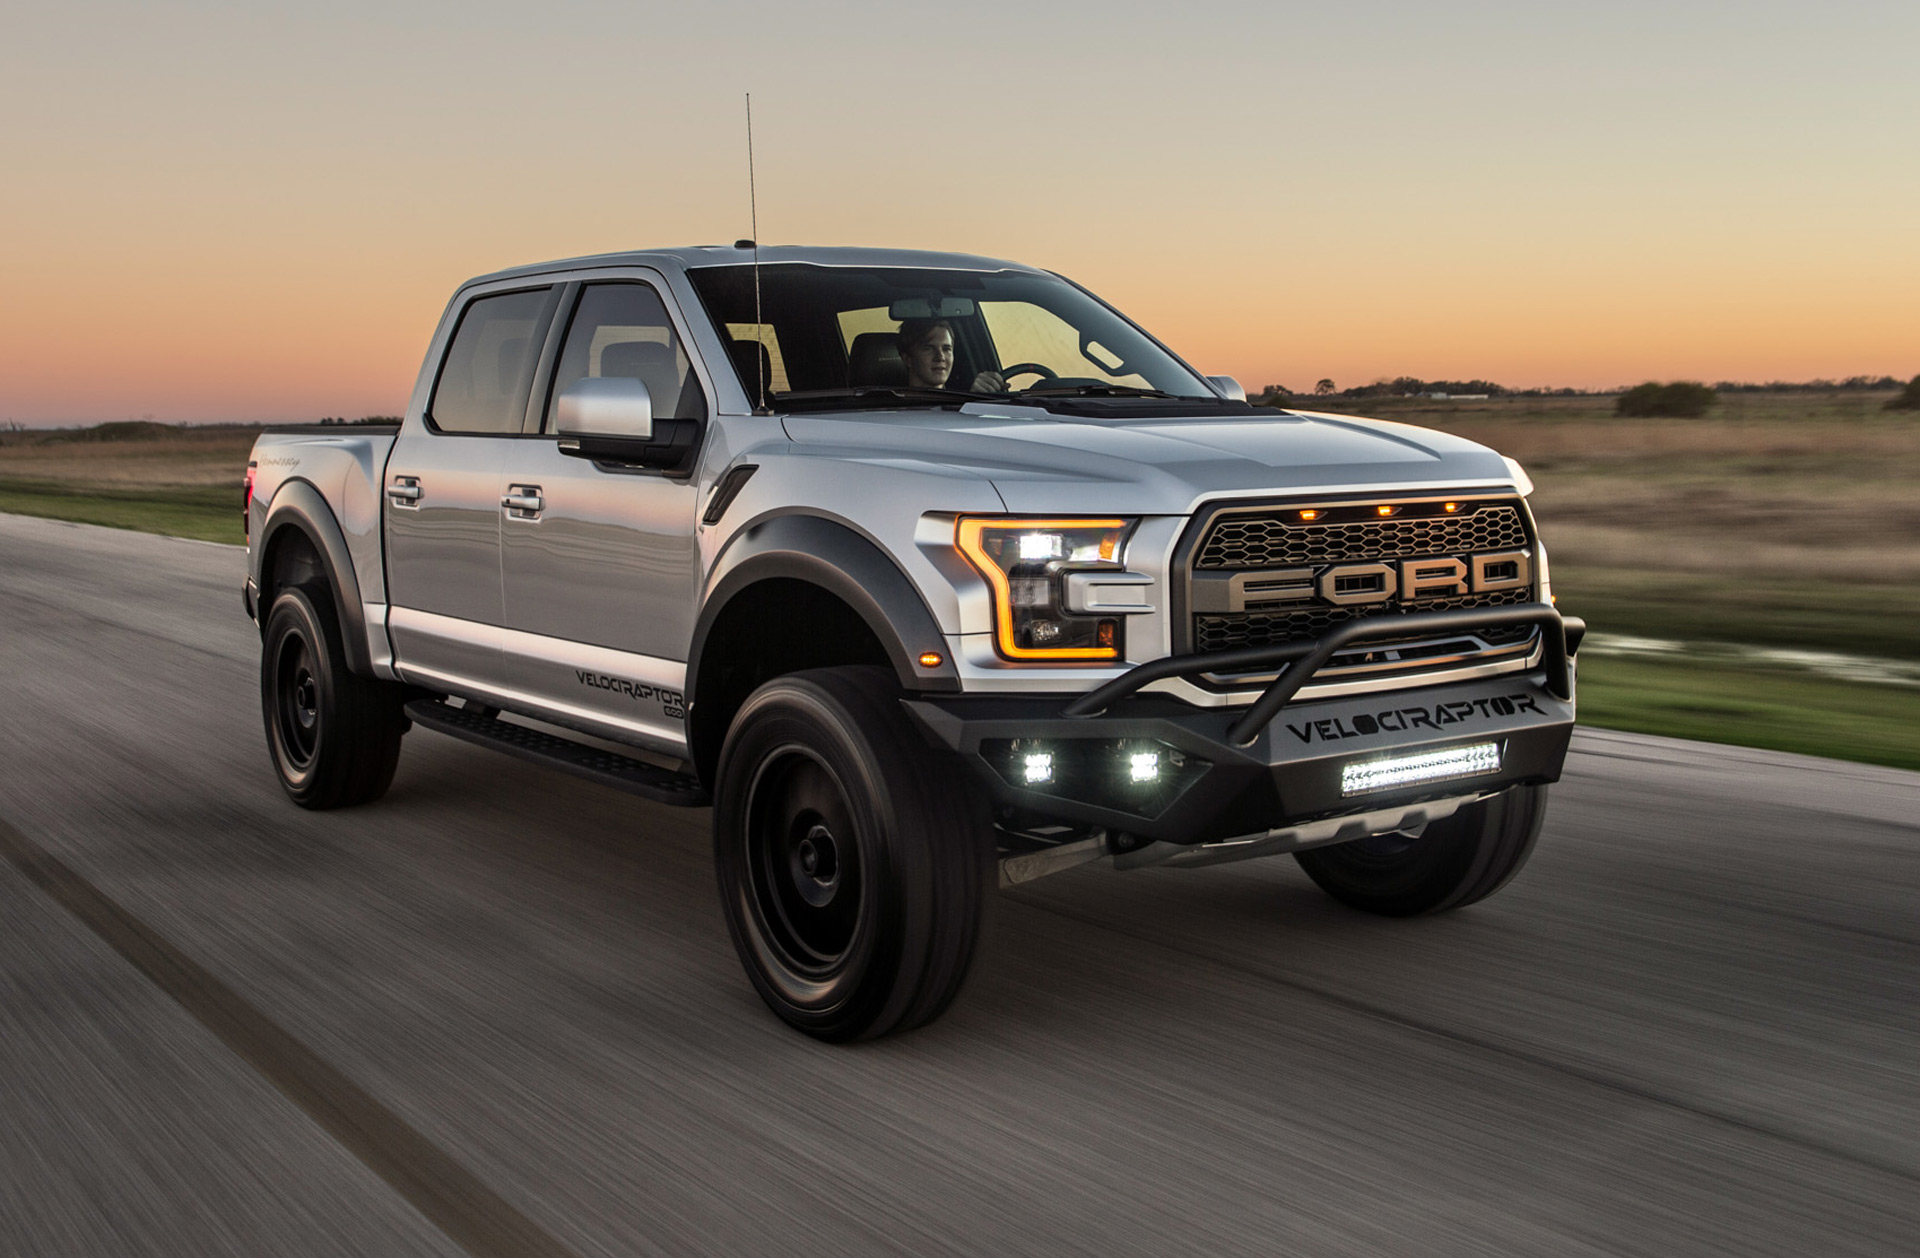 Hennessey gives the Ford F-150 Raptor 605 hp, 4.2-second 0-60 time